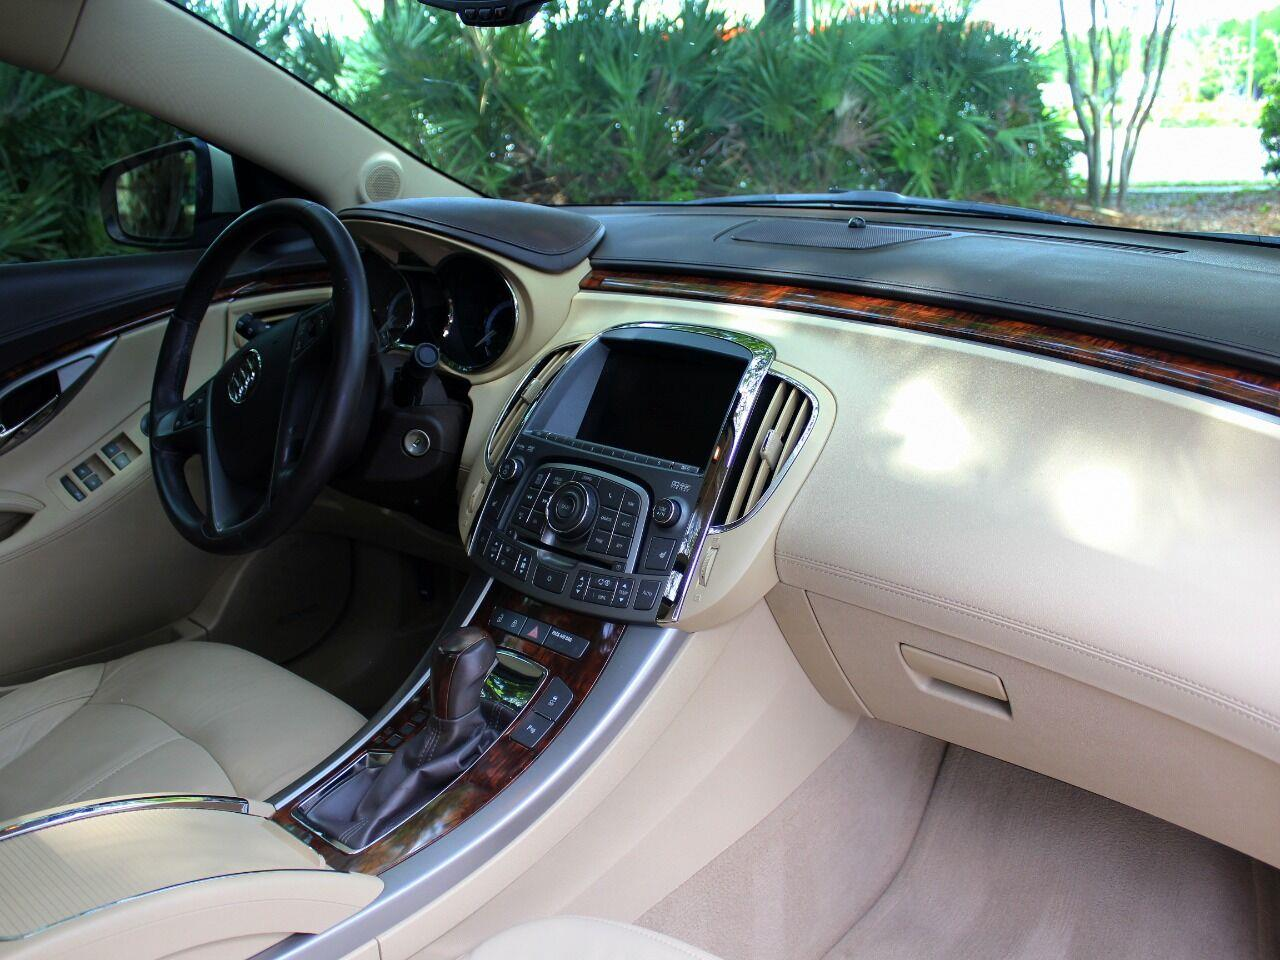 2012 Buick Lacrosse (CC-1364164) for sale in Clearwater, Florida